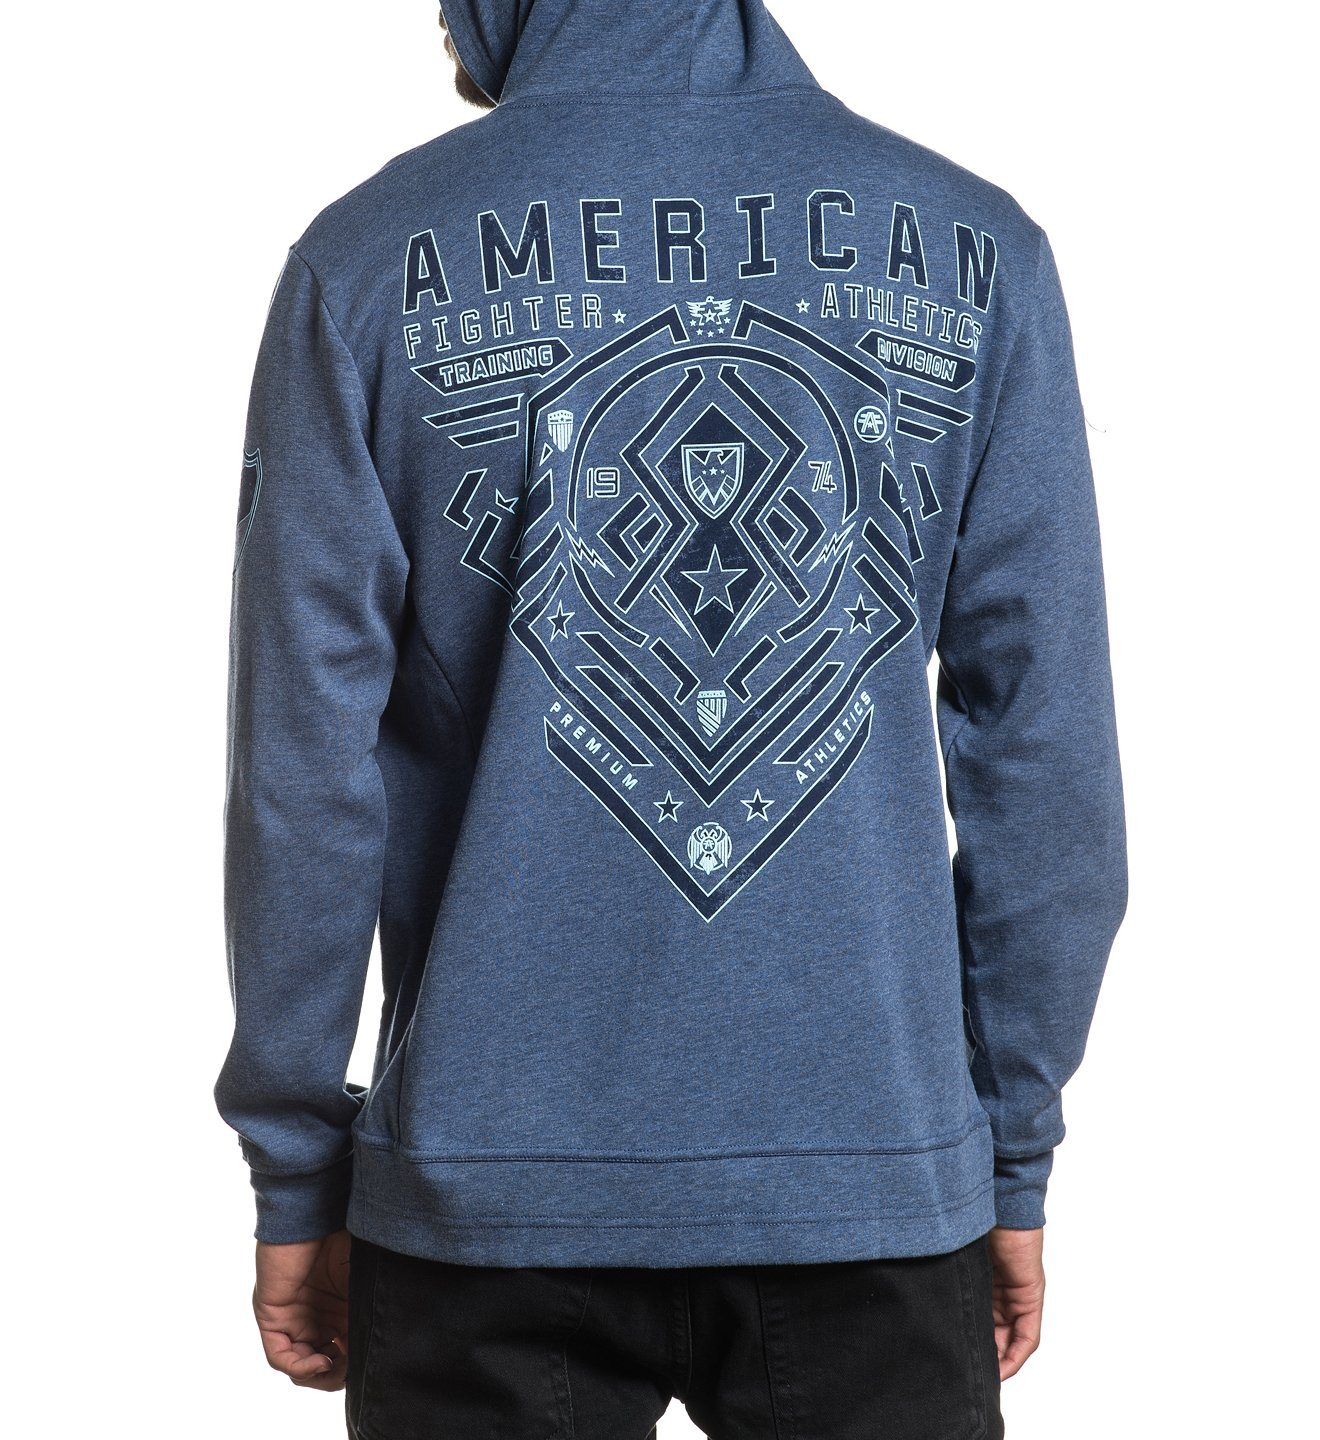 Brimley - Mens Hooded Sweatshirts - American Fighter